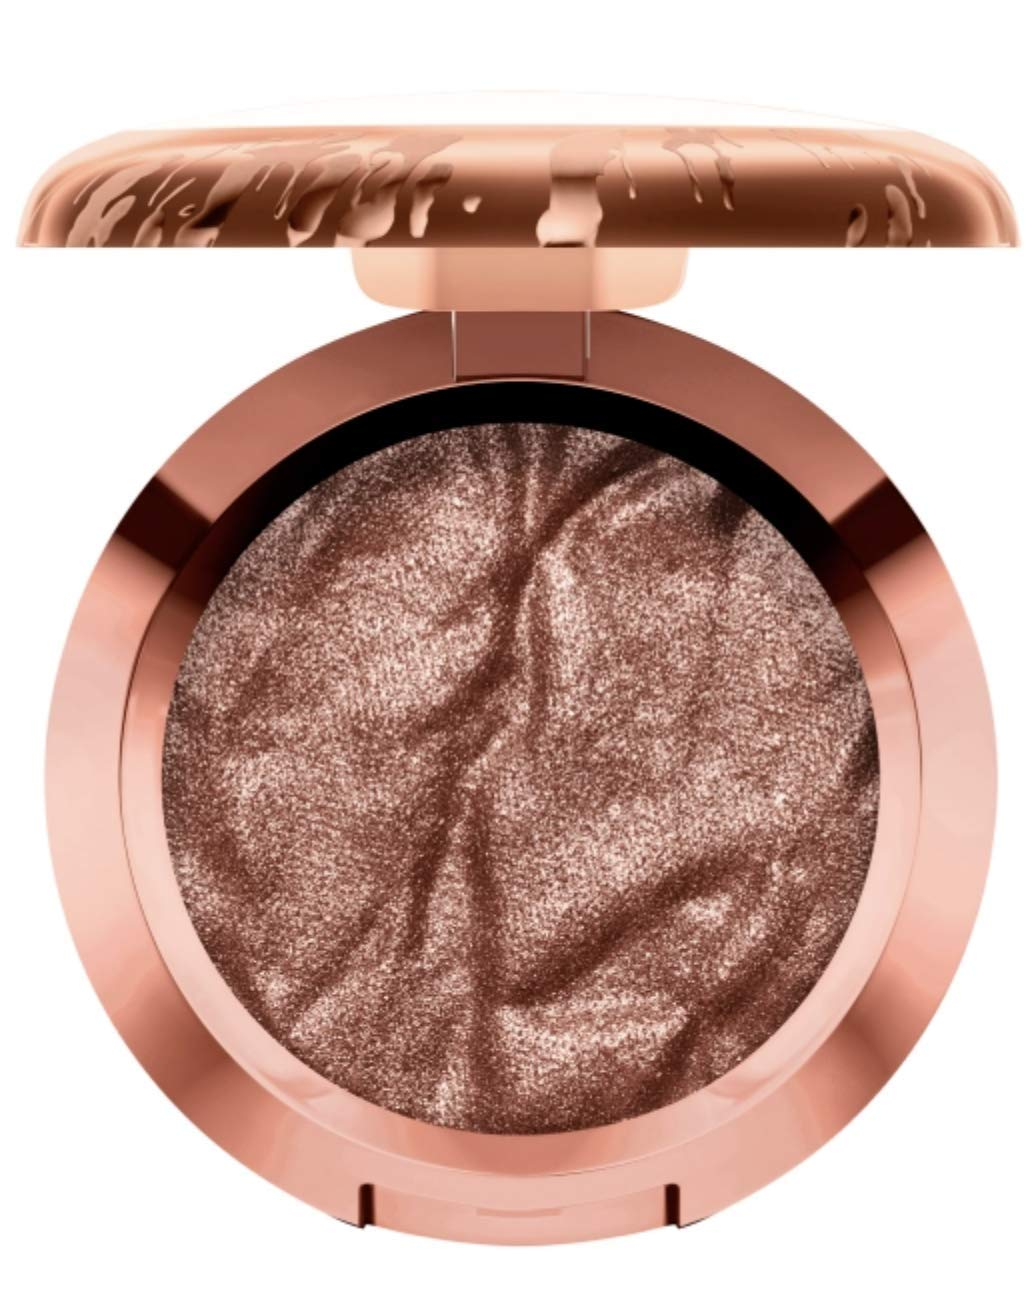 MAC SAND TROPEZ EYESHADOW! Bronzer Collection Foiled Eyeshadow New in Box Limited Edition